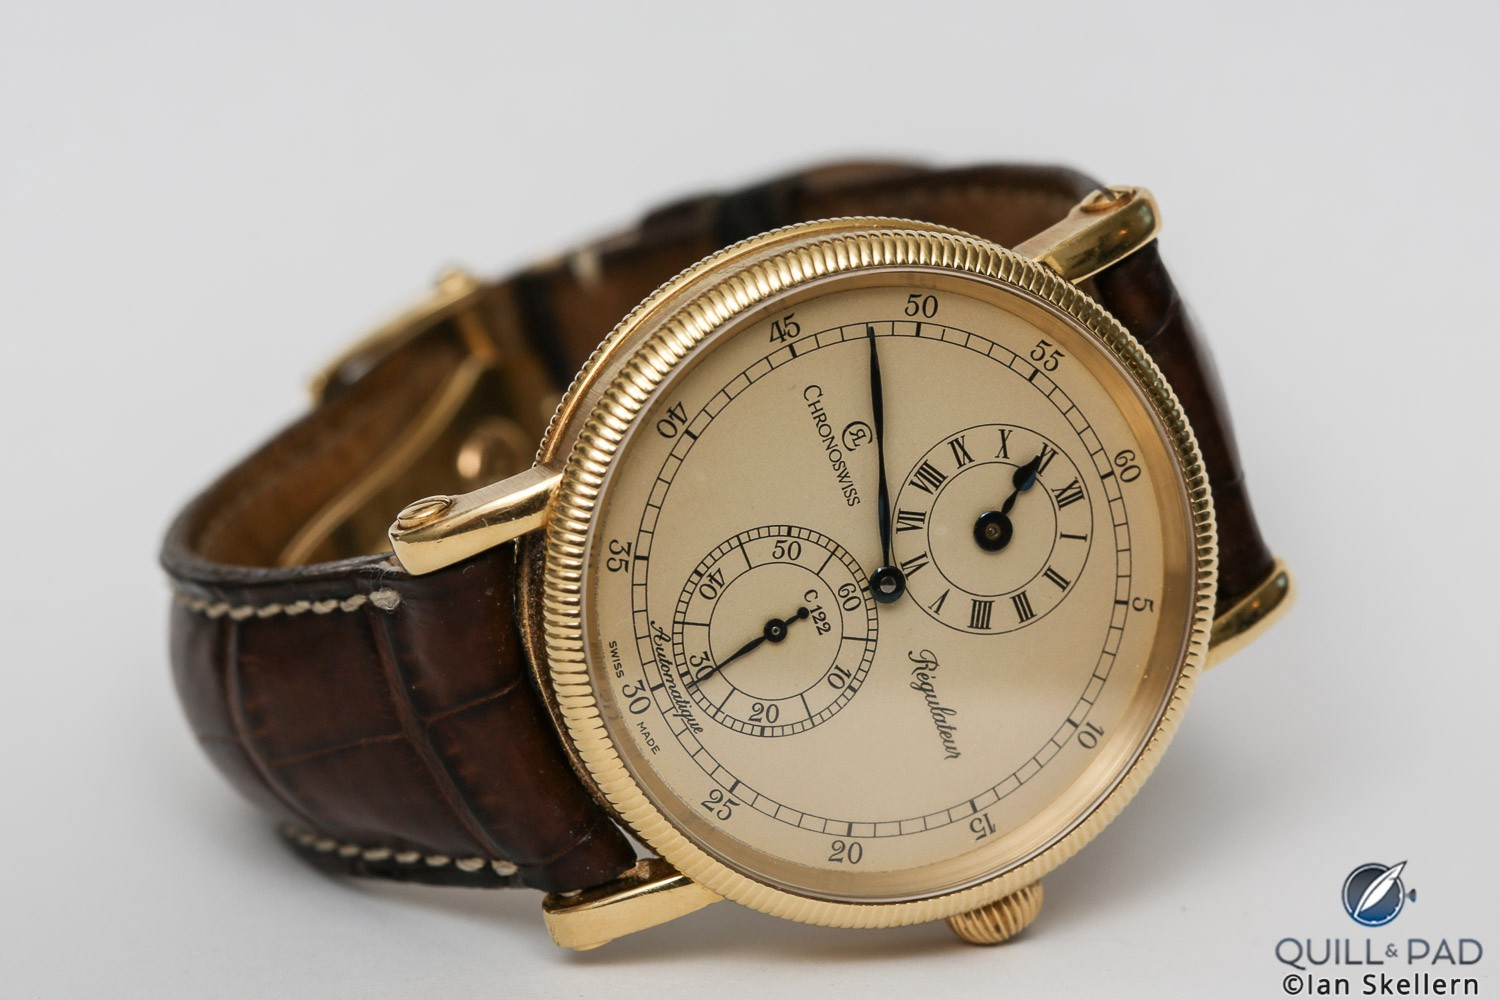 The quintessential Chronoswiss model and the first of its kind: this Régulateur is Gerd-Rüdiger Lang's own watch